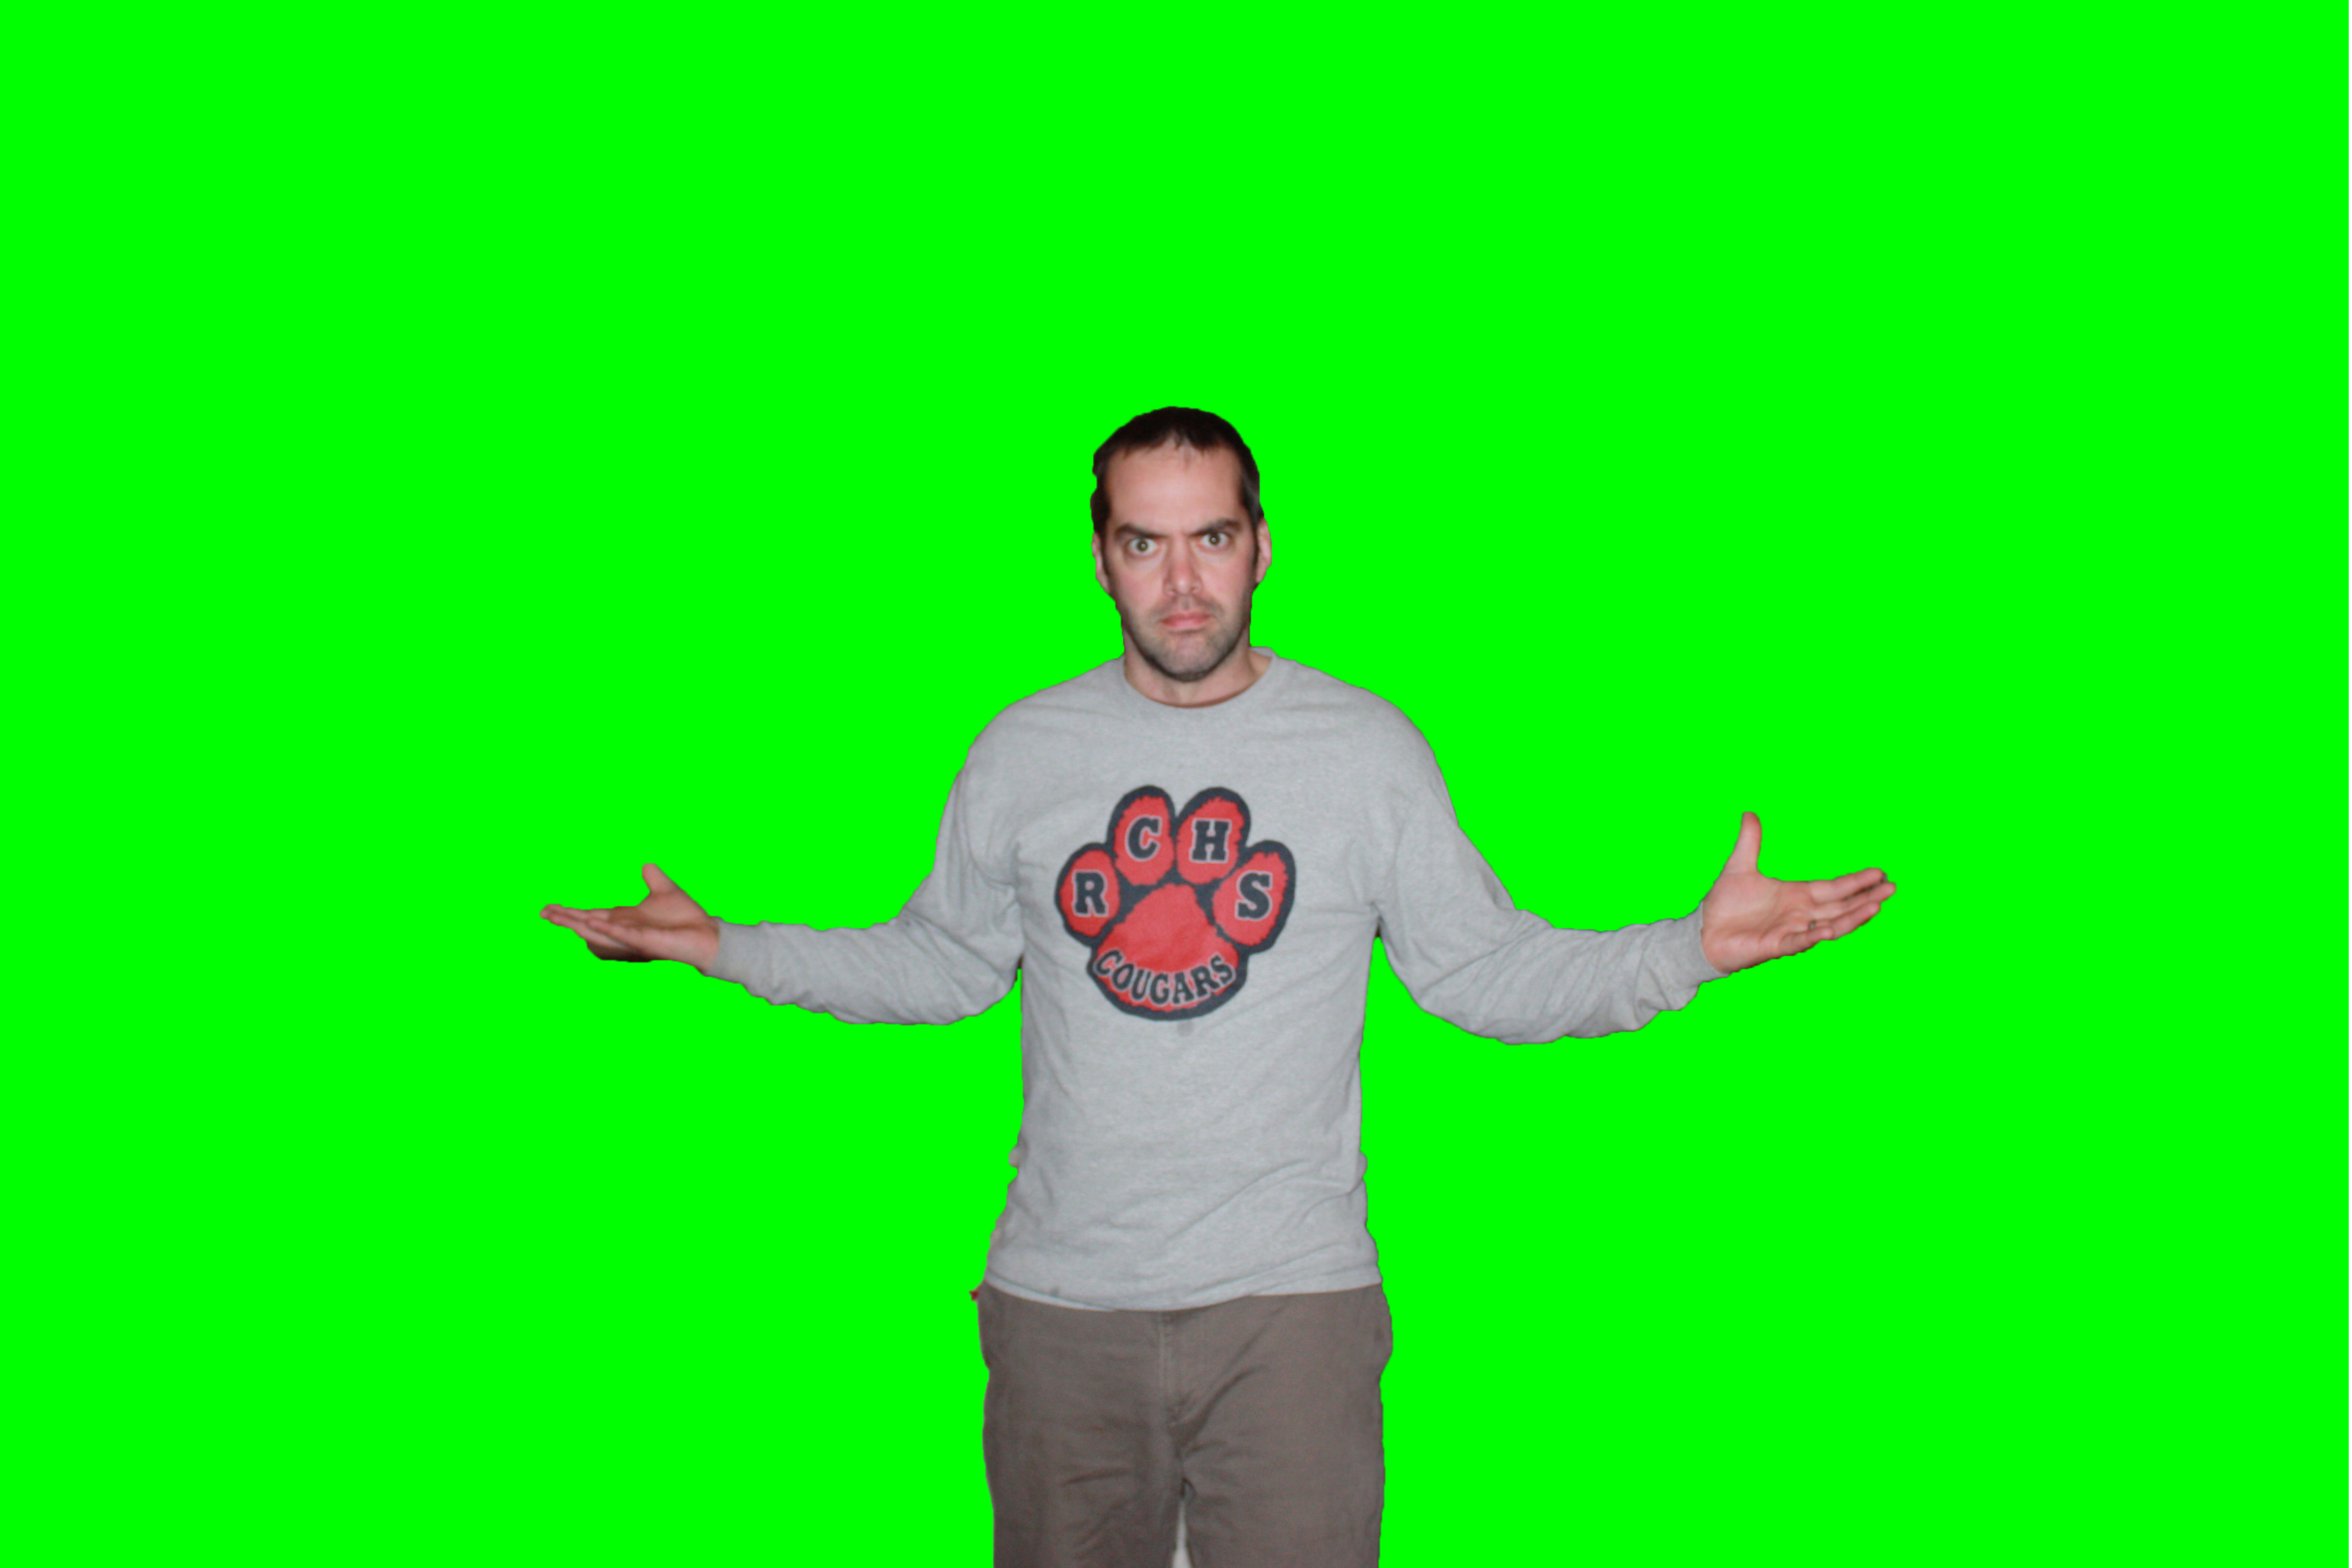 If you need an image to work on... Green Screen Smith